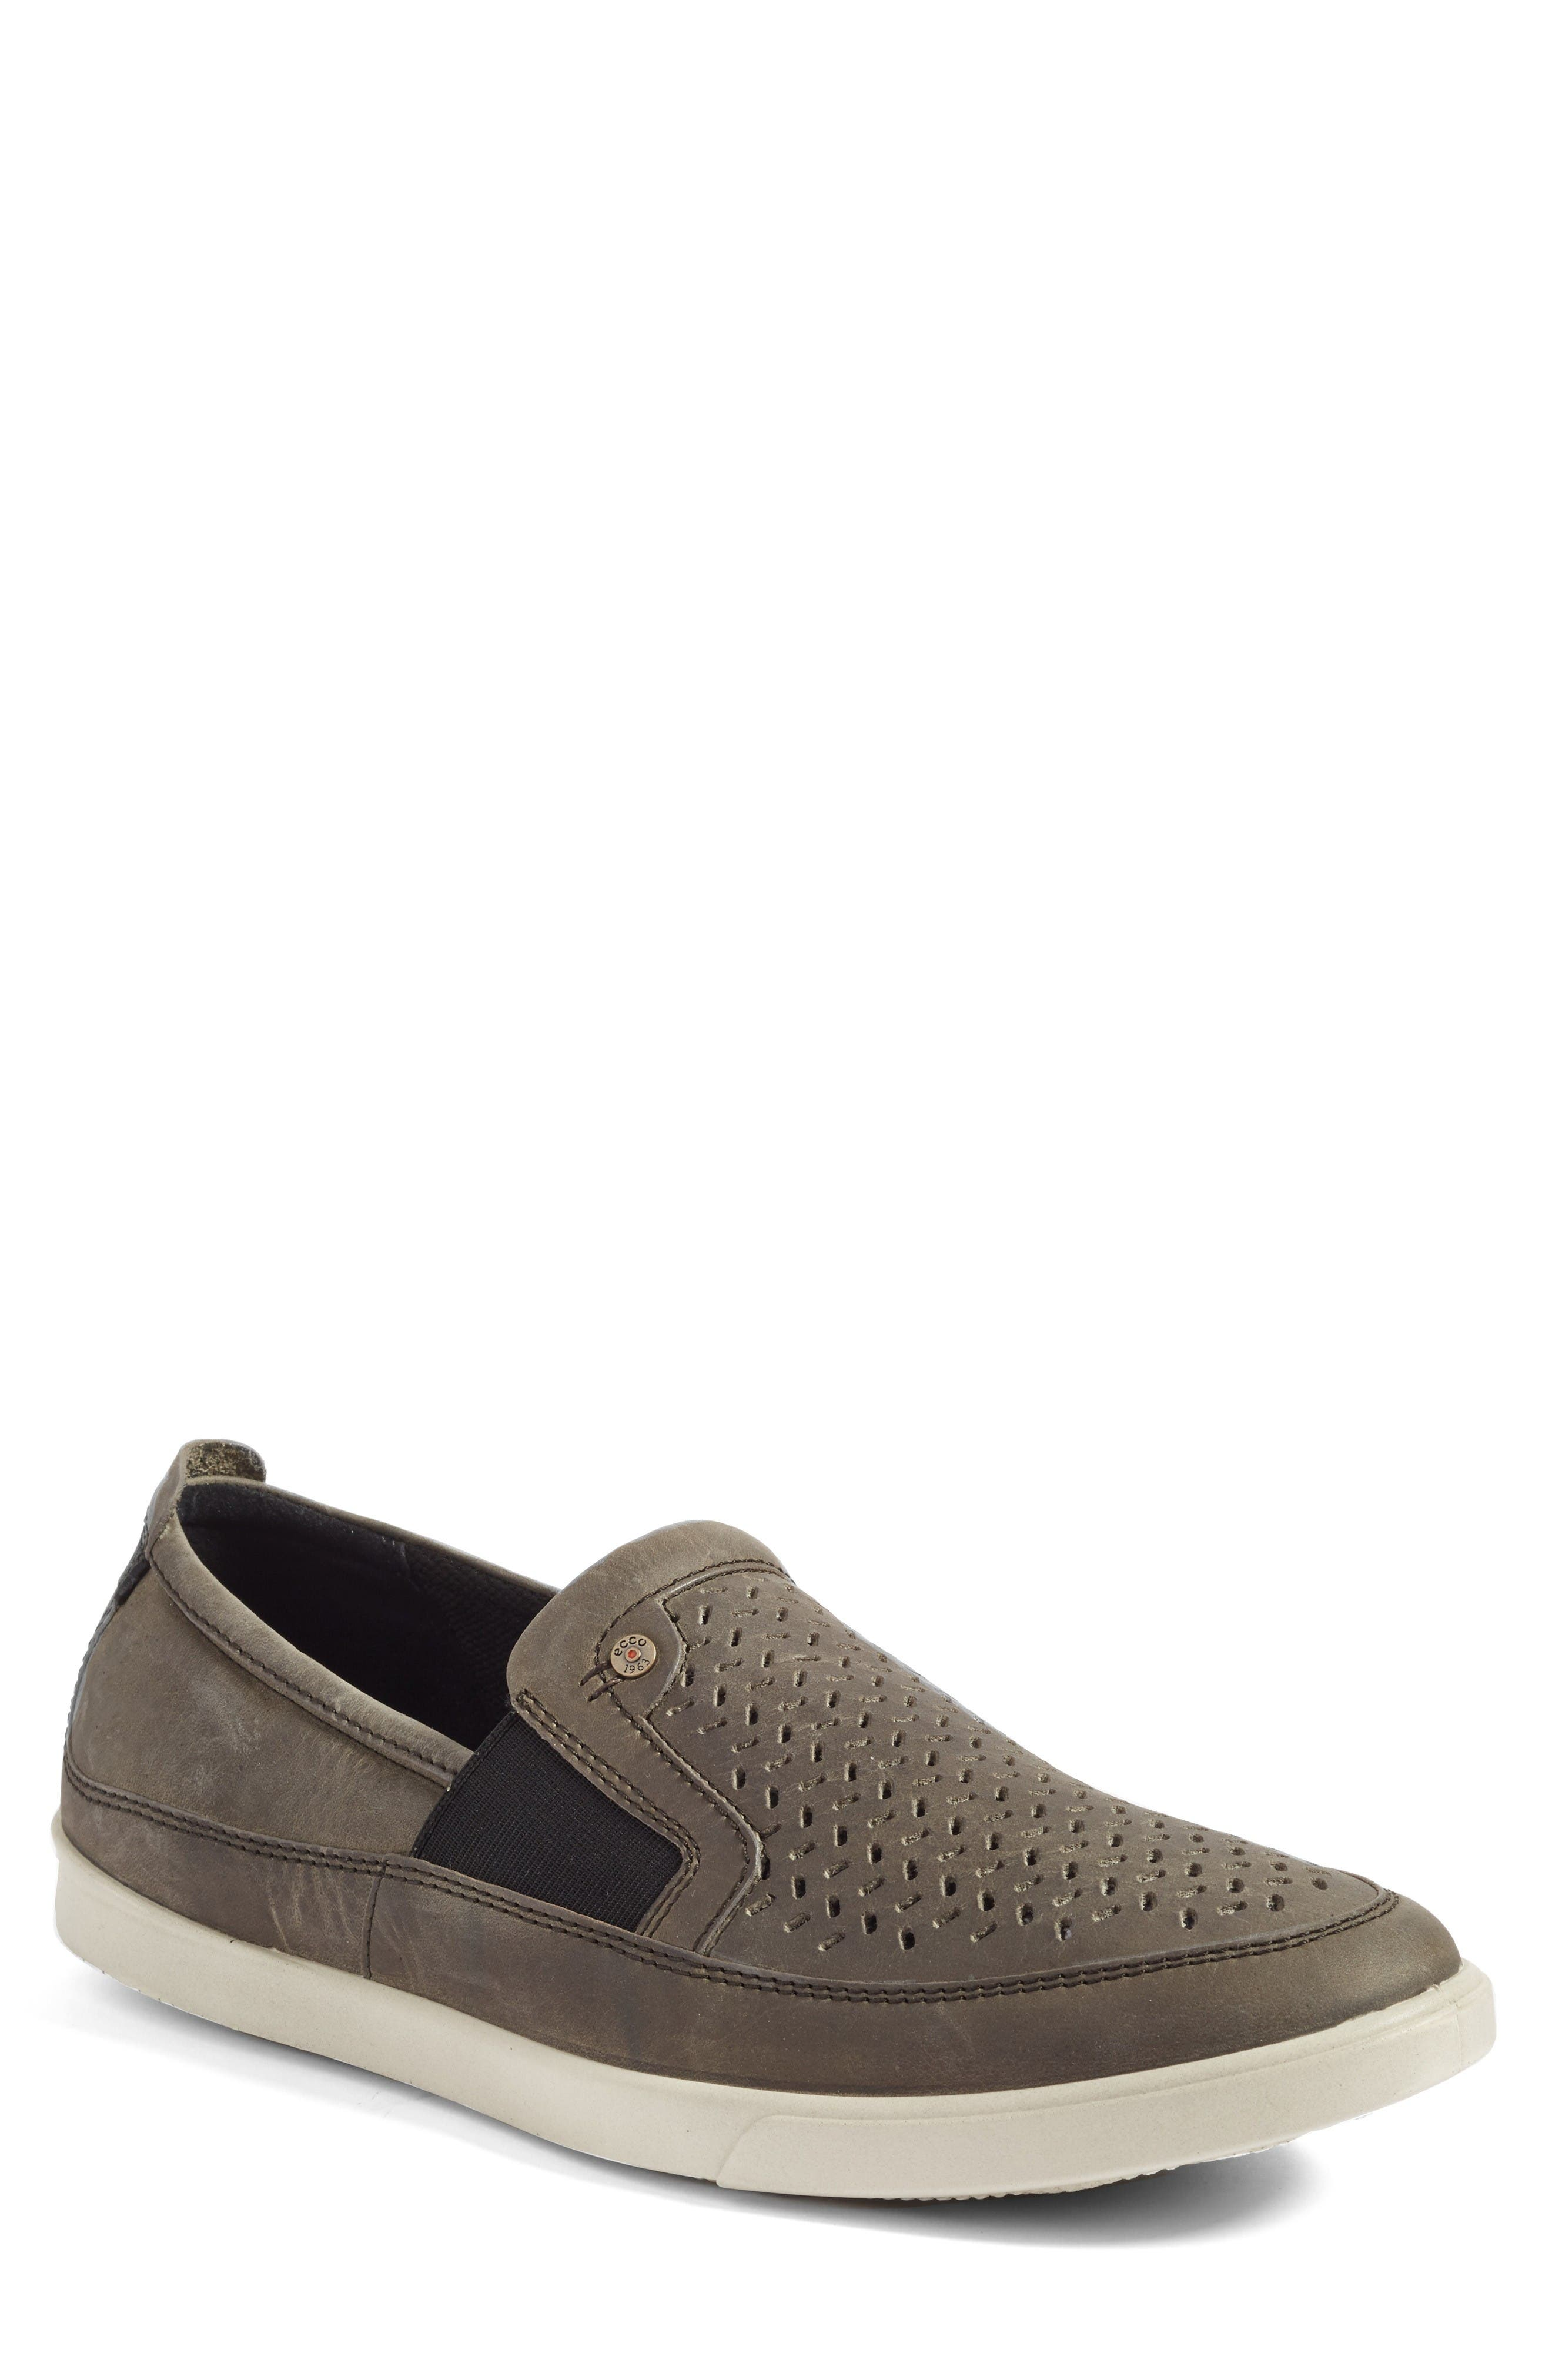 Main Image - ECCO 'Collin' Perforated Slip On Sneaker (Men)